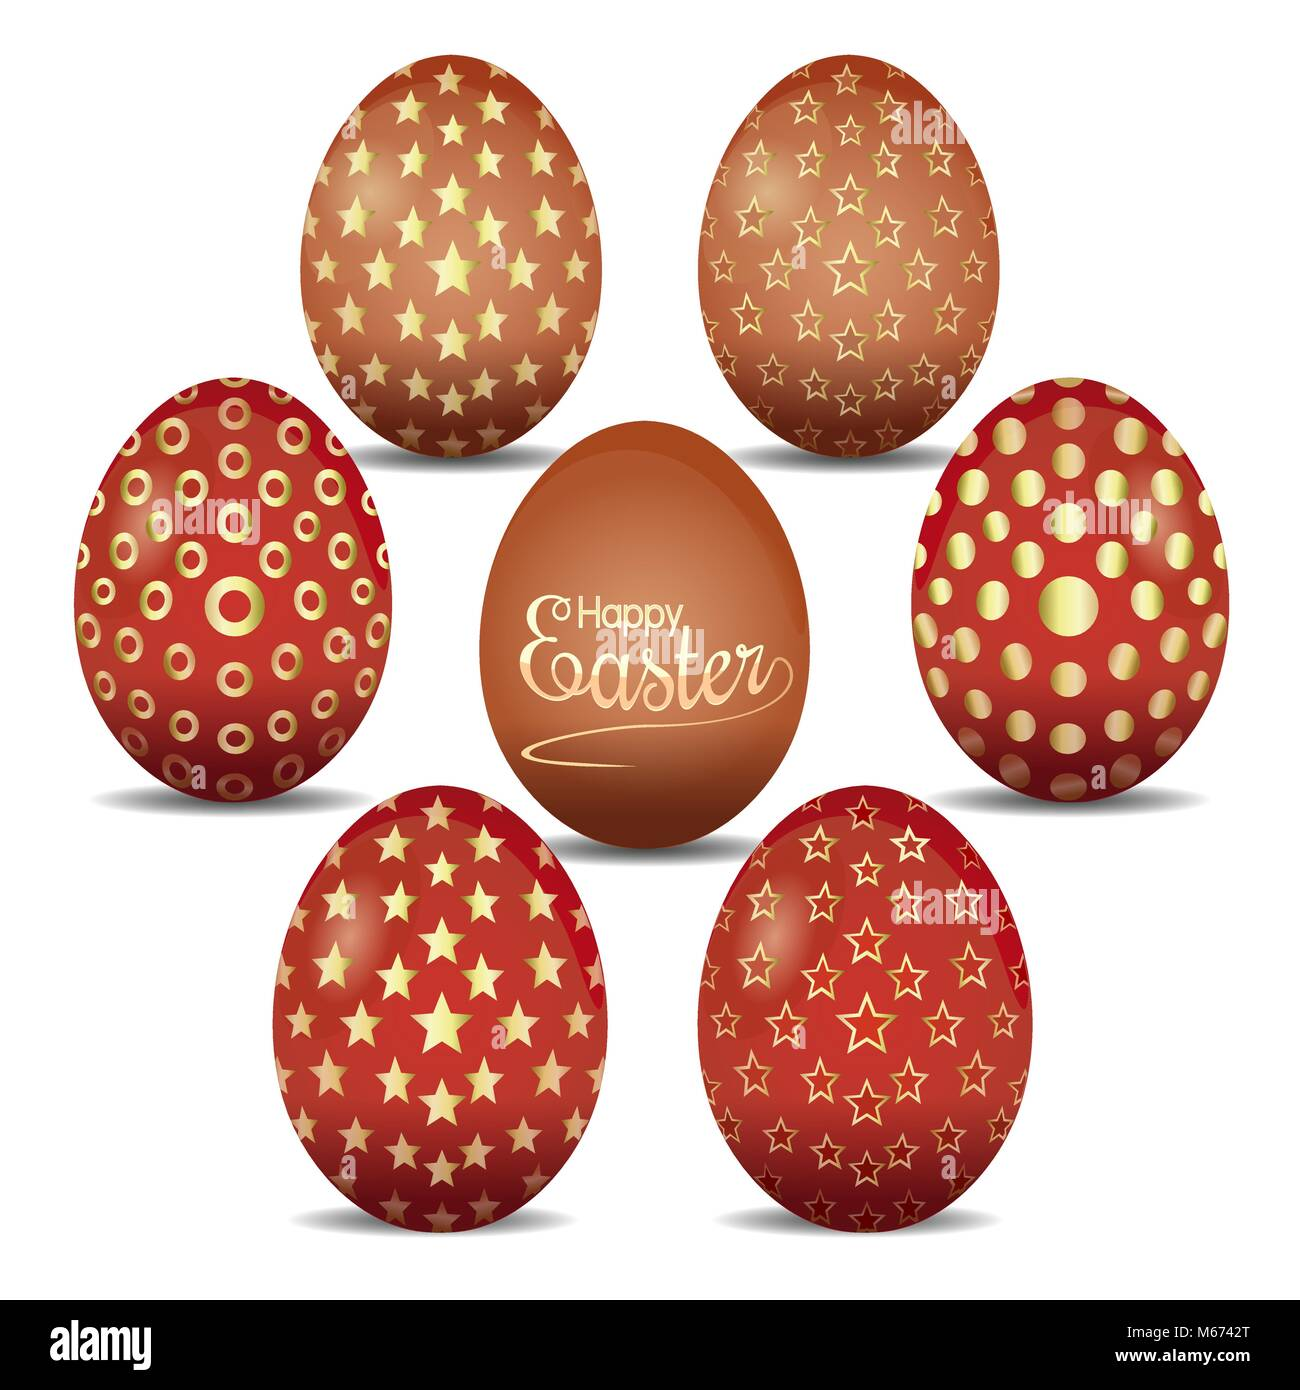 Set of cute Easter eggs with golden ornaments. Seven Easter eggs on a white background. Happy Easter. Vector illustration - Stock Image